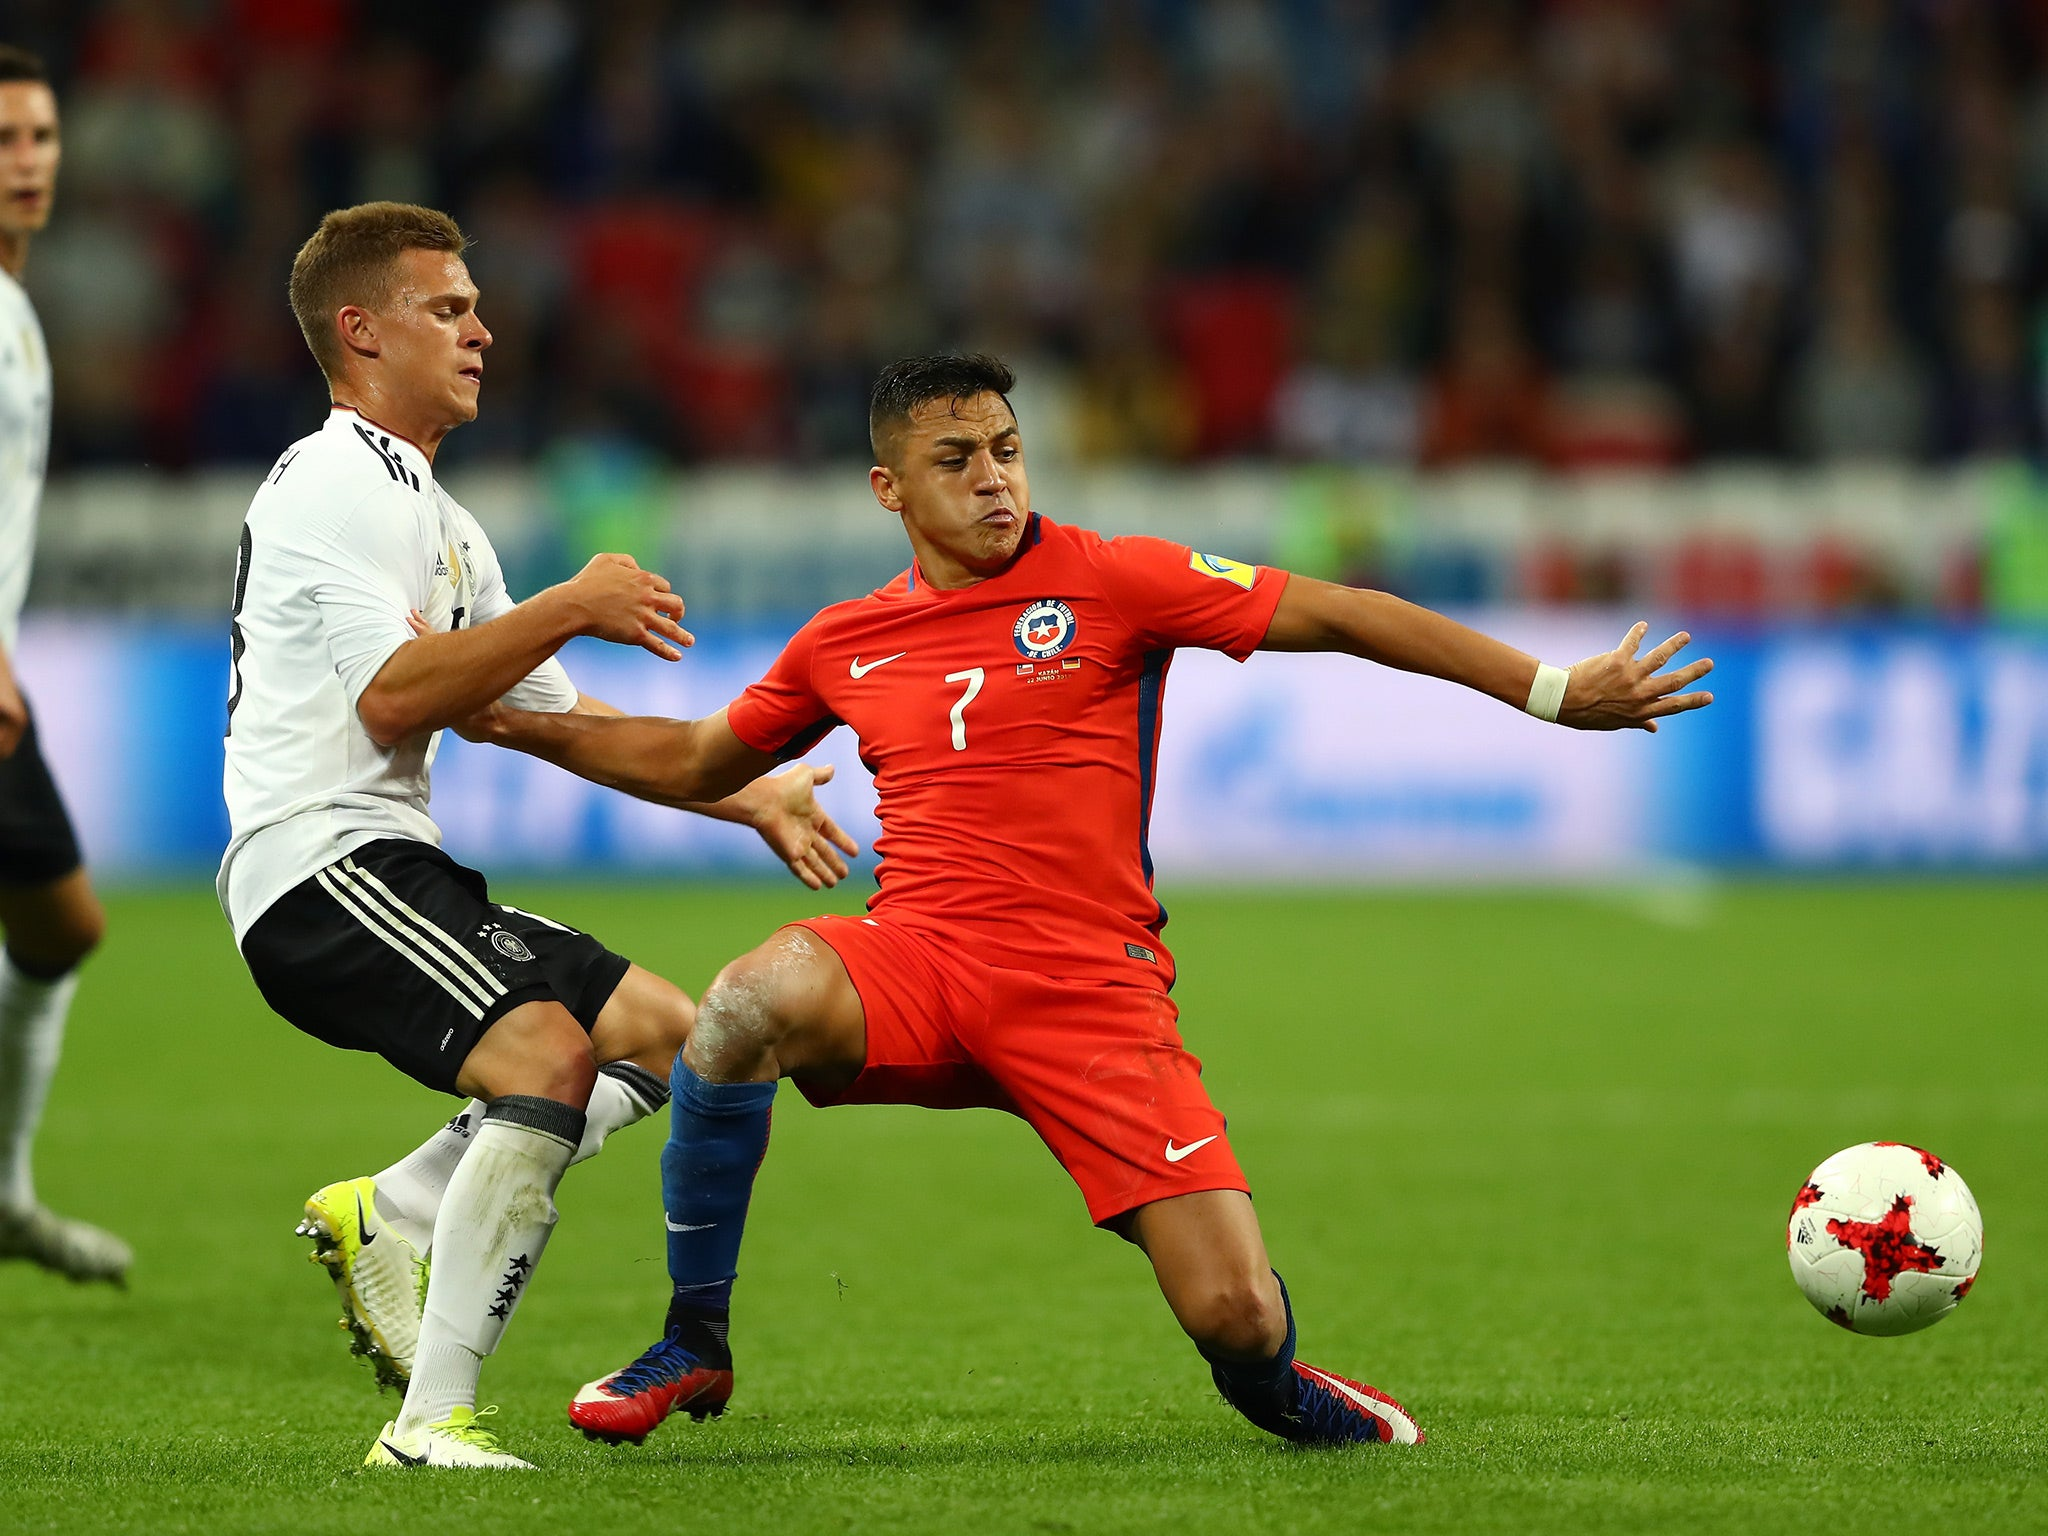 Chile vs Germany, 2017 Confederations Cup final: What time is kick-off, live TV channel, odds, prediction